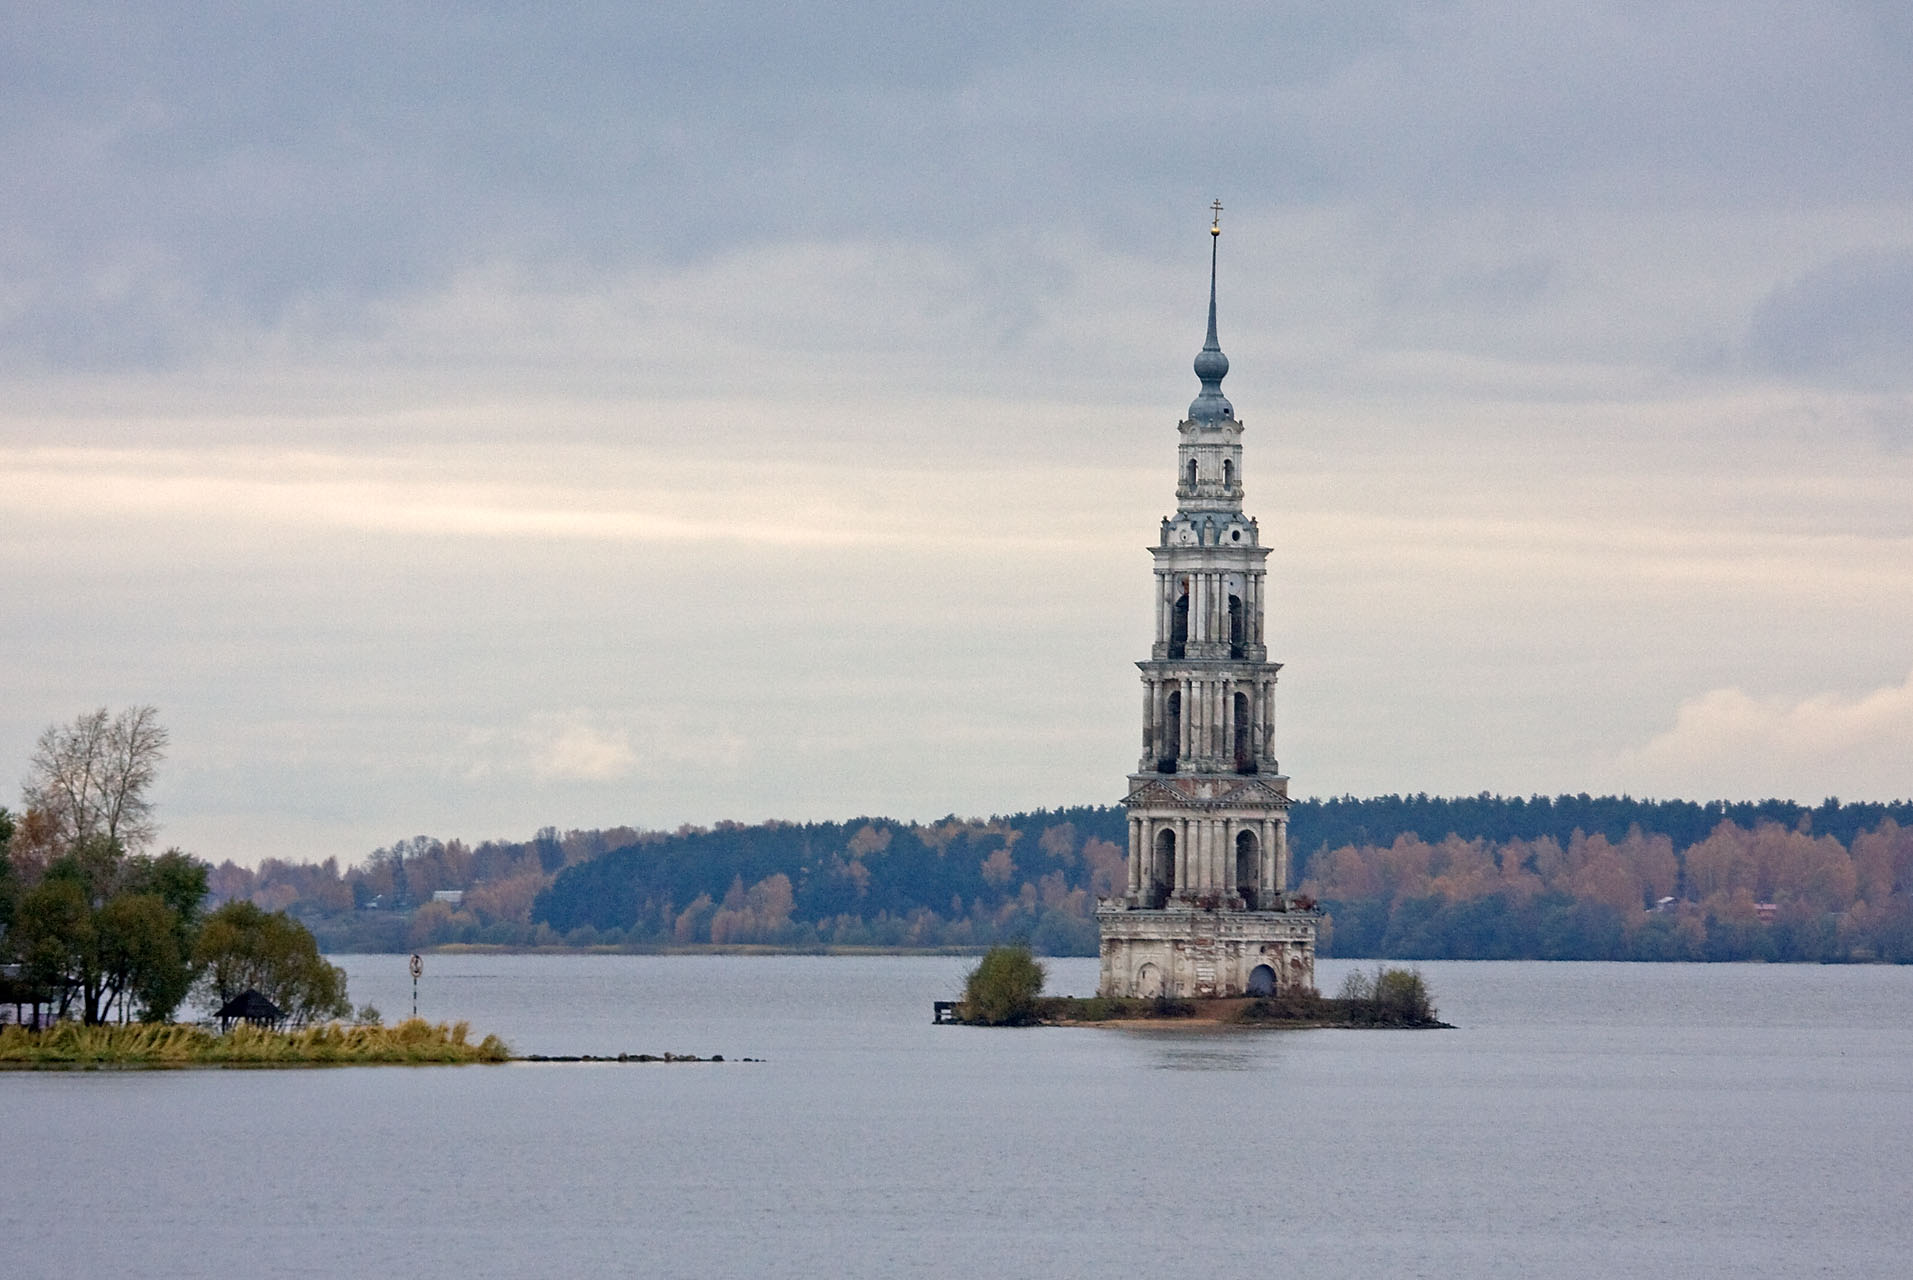 https://upload.wikimedia.org/wikipedia/commons/3/38/Bell_tower_of_Saint_Nicholas_Church_(Kalyazin).jpg